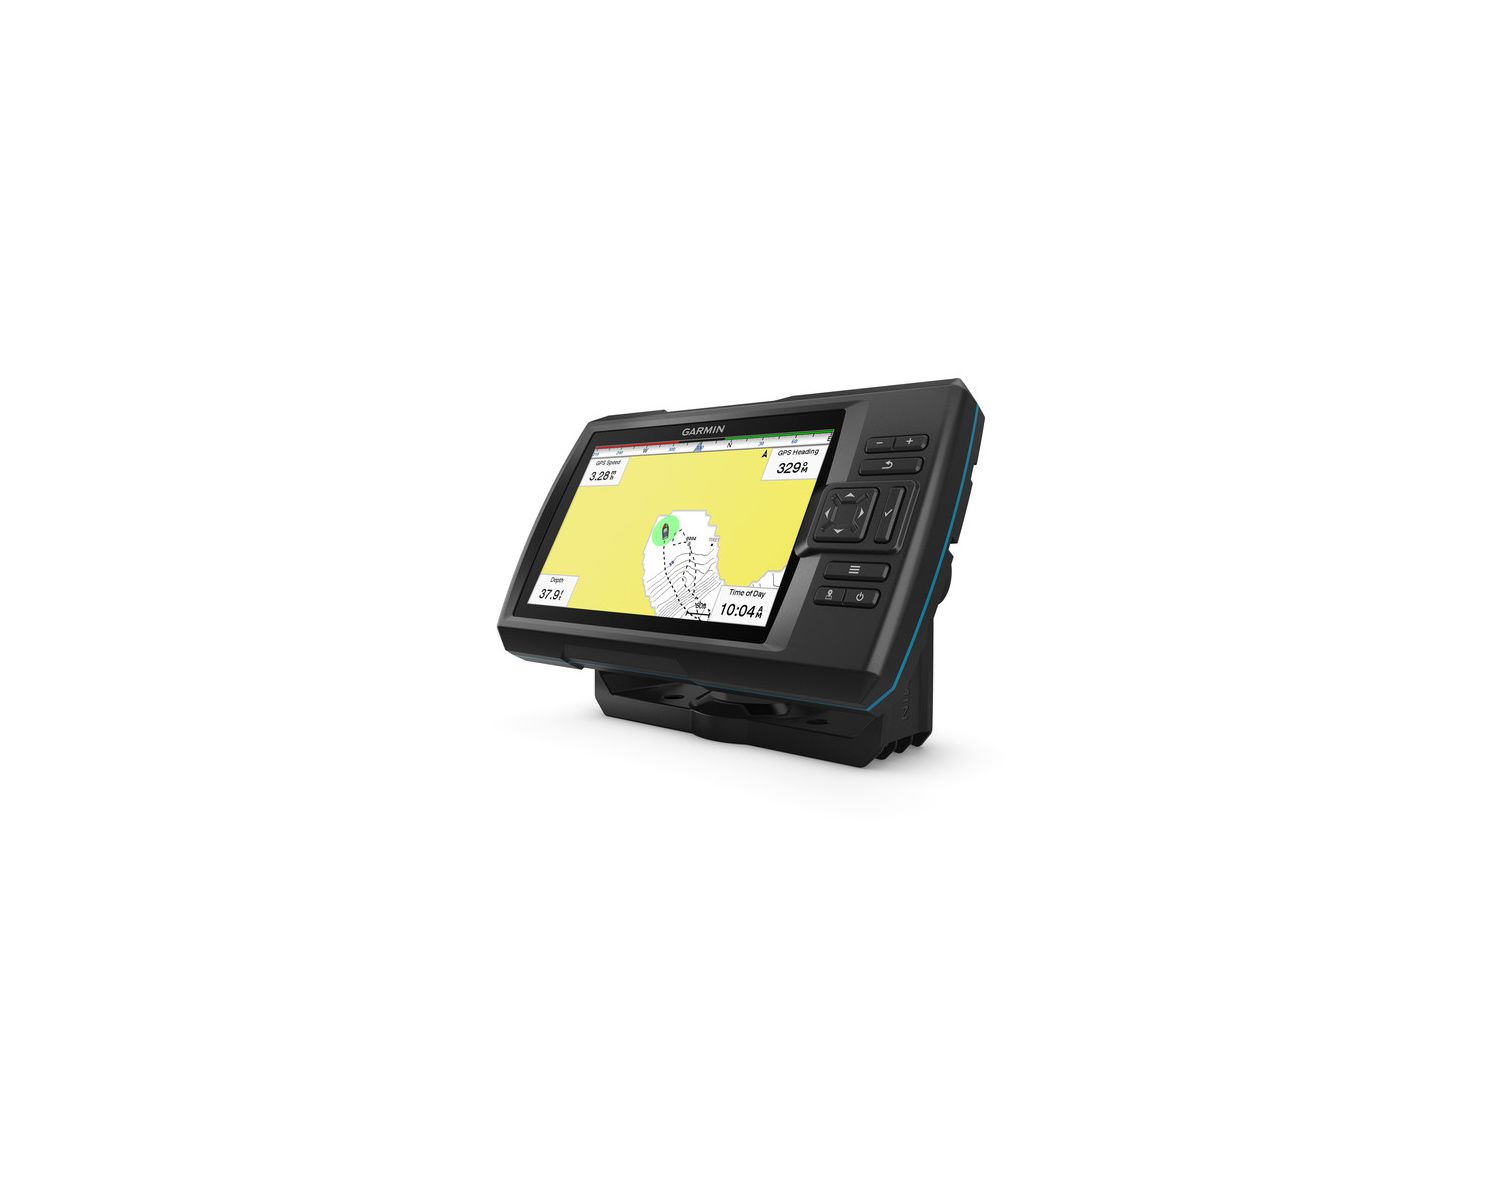 garmin striker plus 7cv   gt20-tm  4 pin